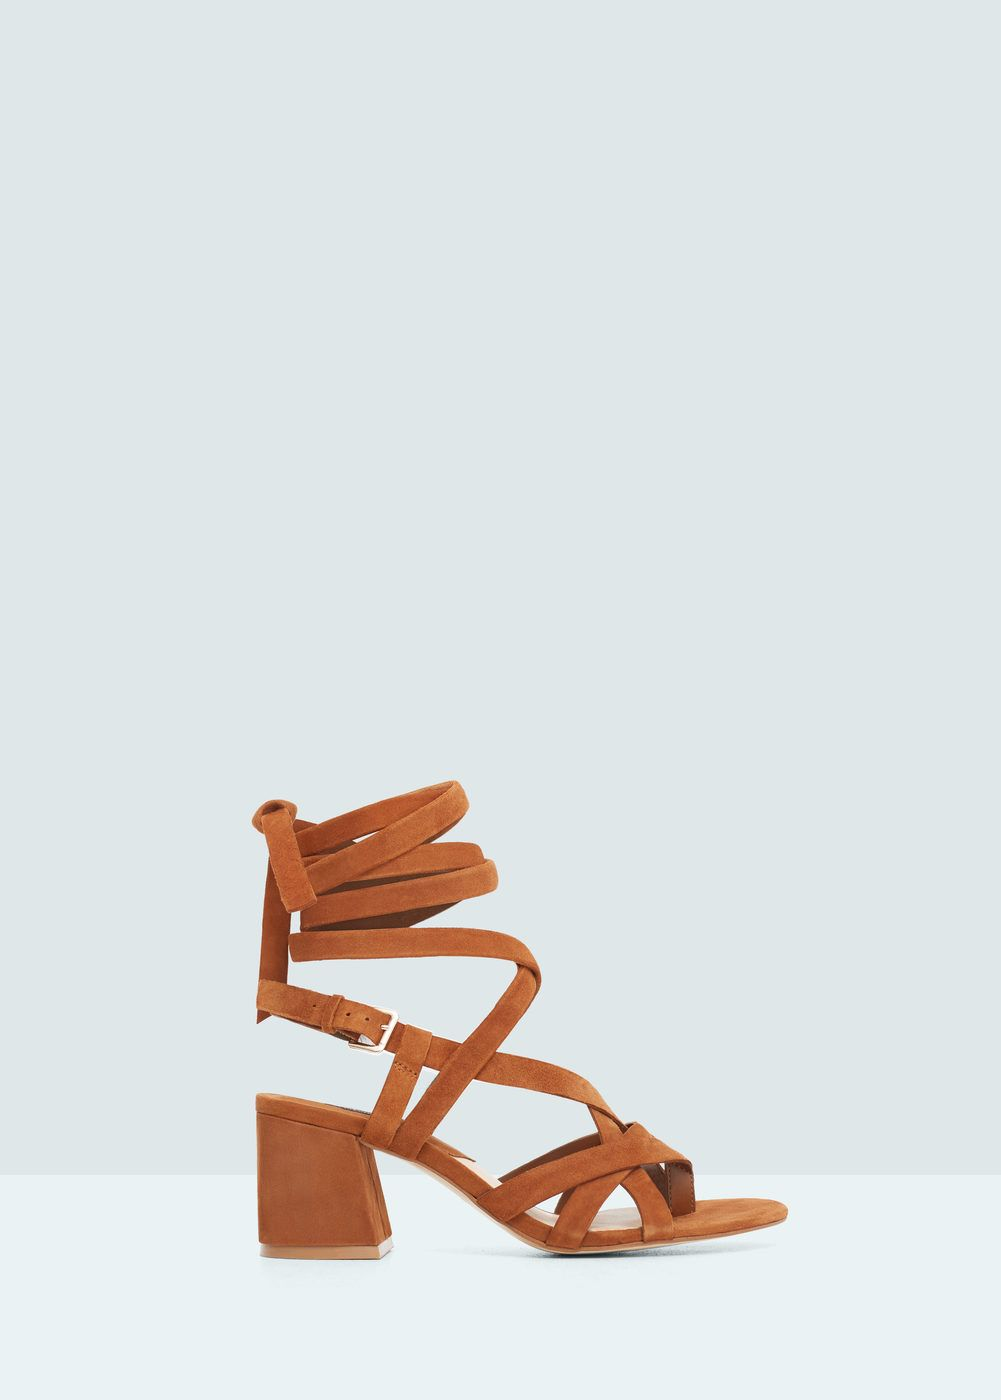 Sandals shoes usa - Leather Straps Sandal Shoes For Women Mango Usa